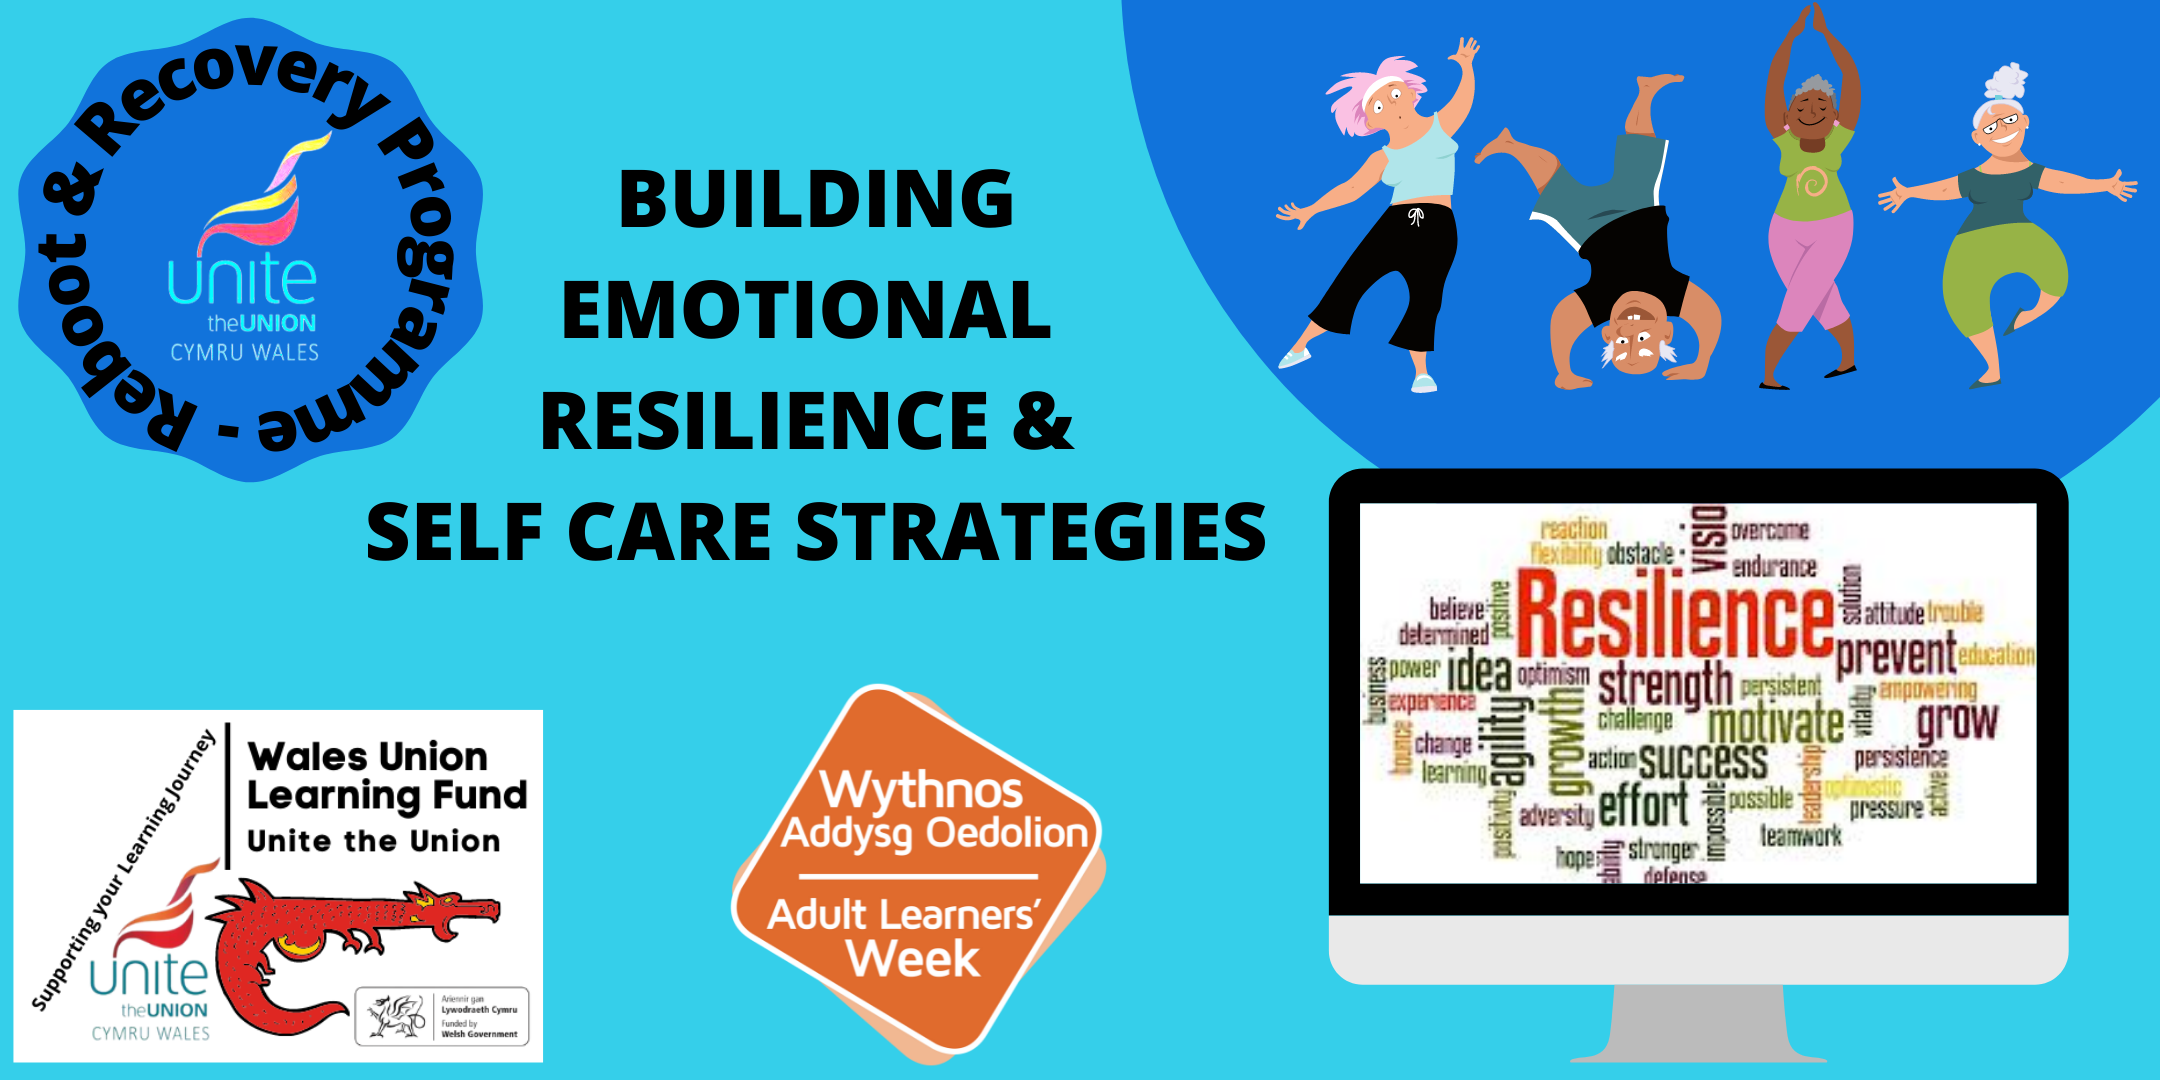 reboot-recovery-building-emotional-resilience-self-care-strategies